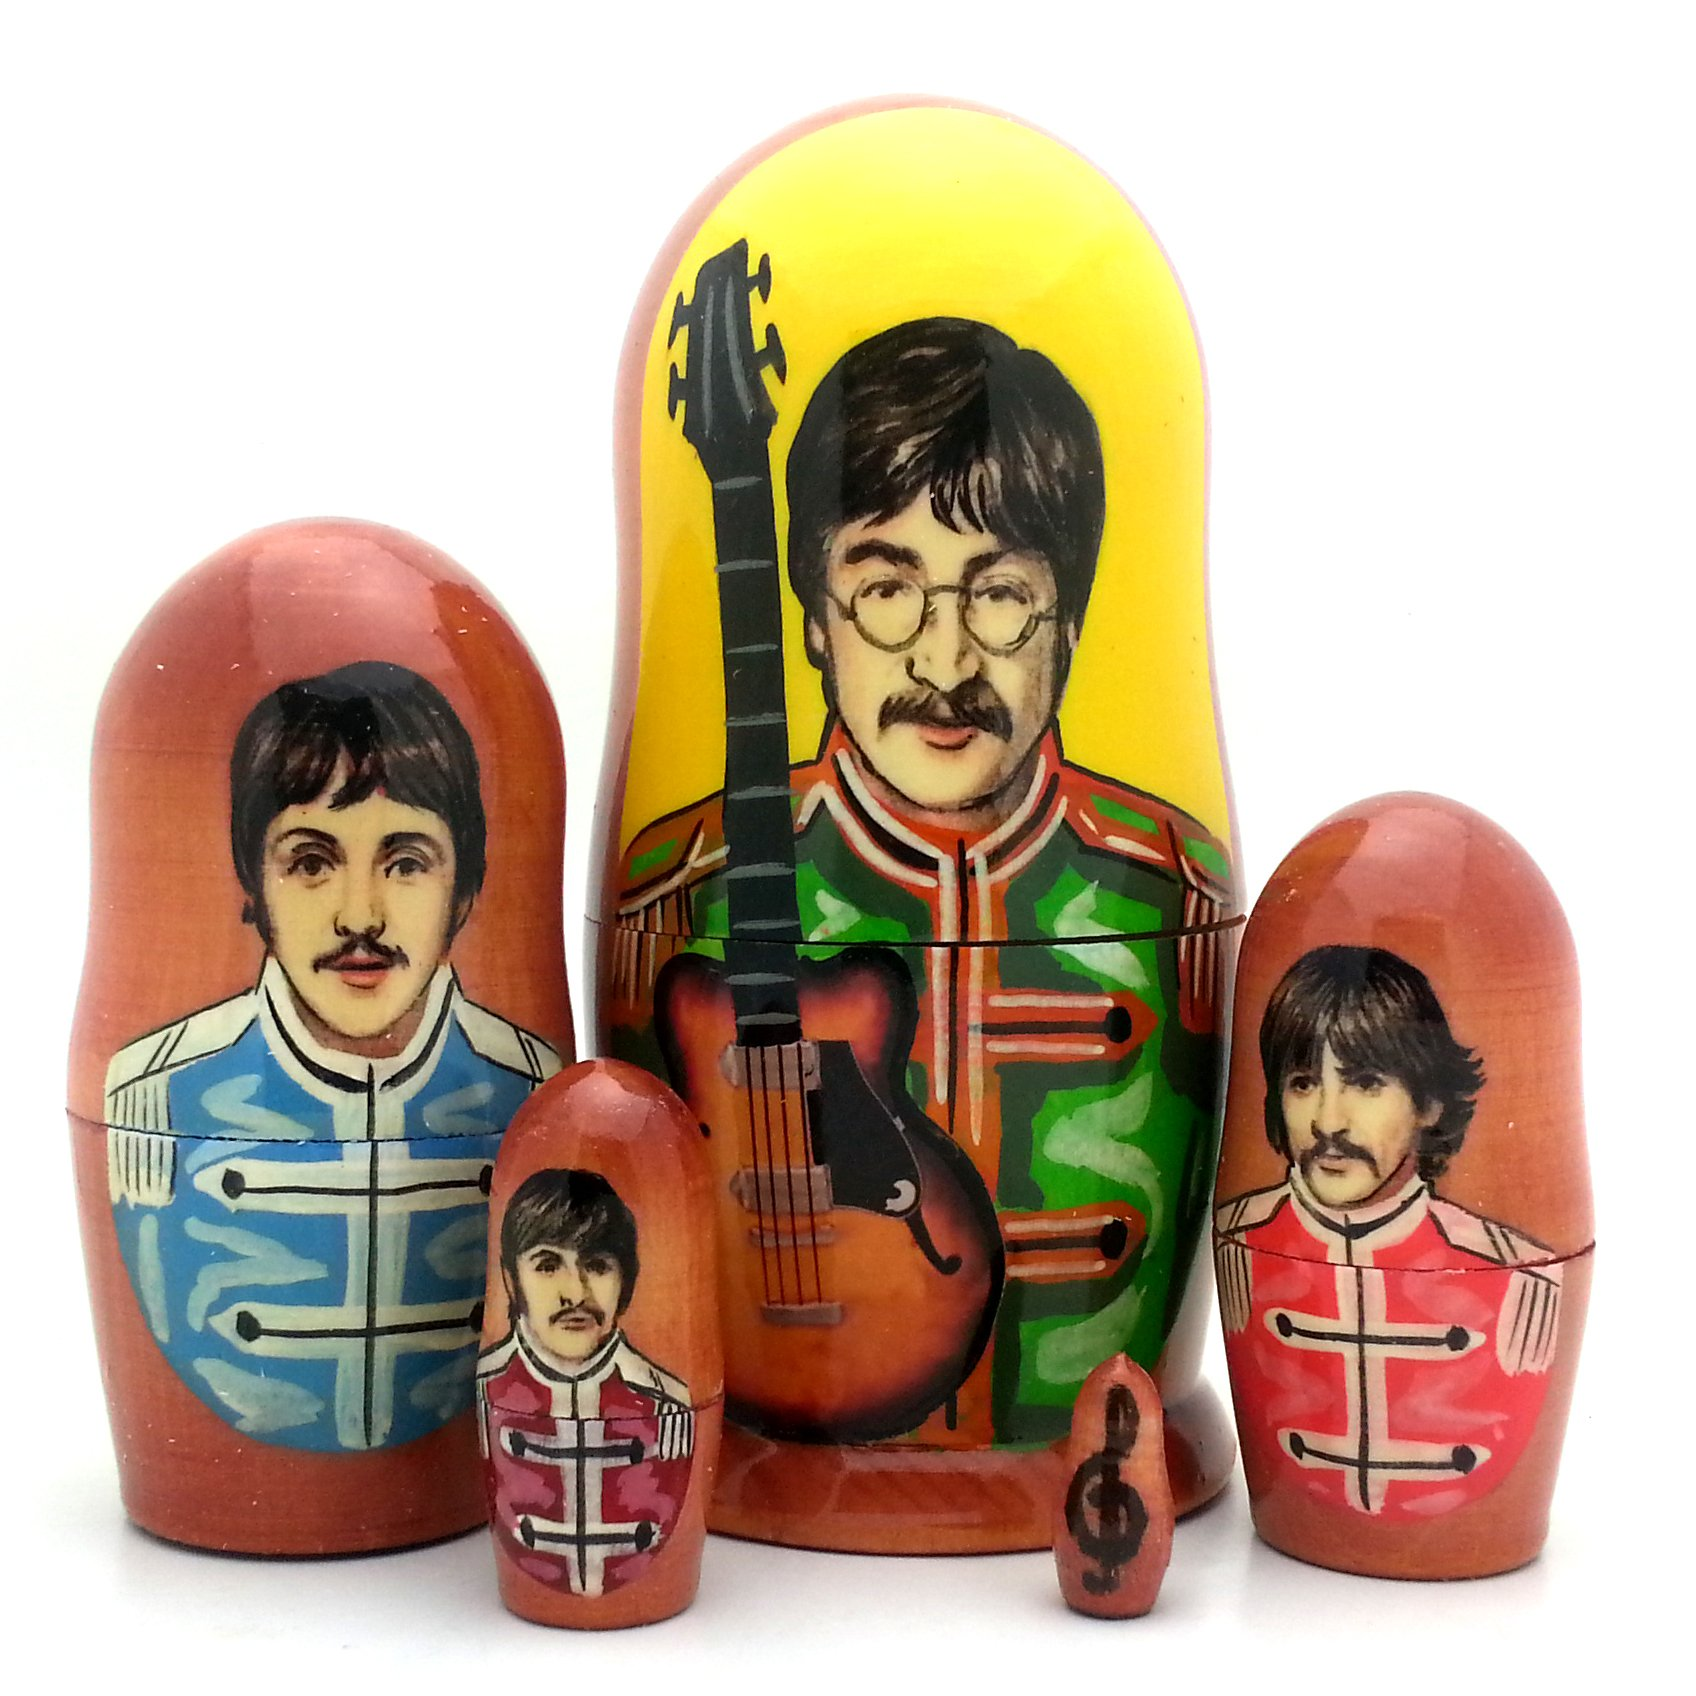 Beatles Sergent Pepper Russian Nesting Dolls 5 Piece Doll Set 4'' by BuyRussianGifts